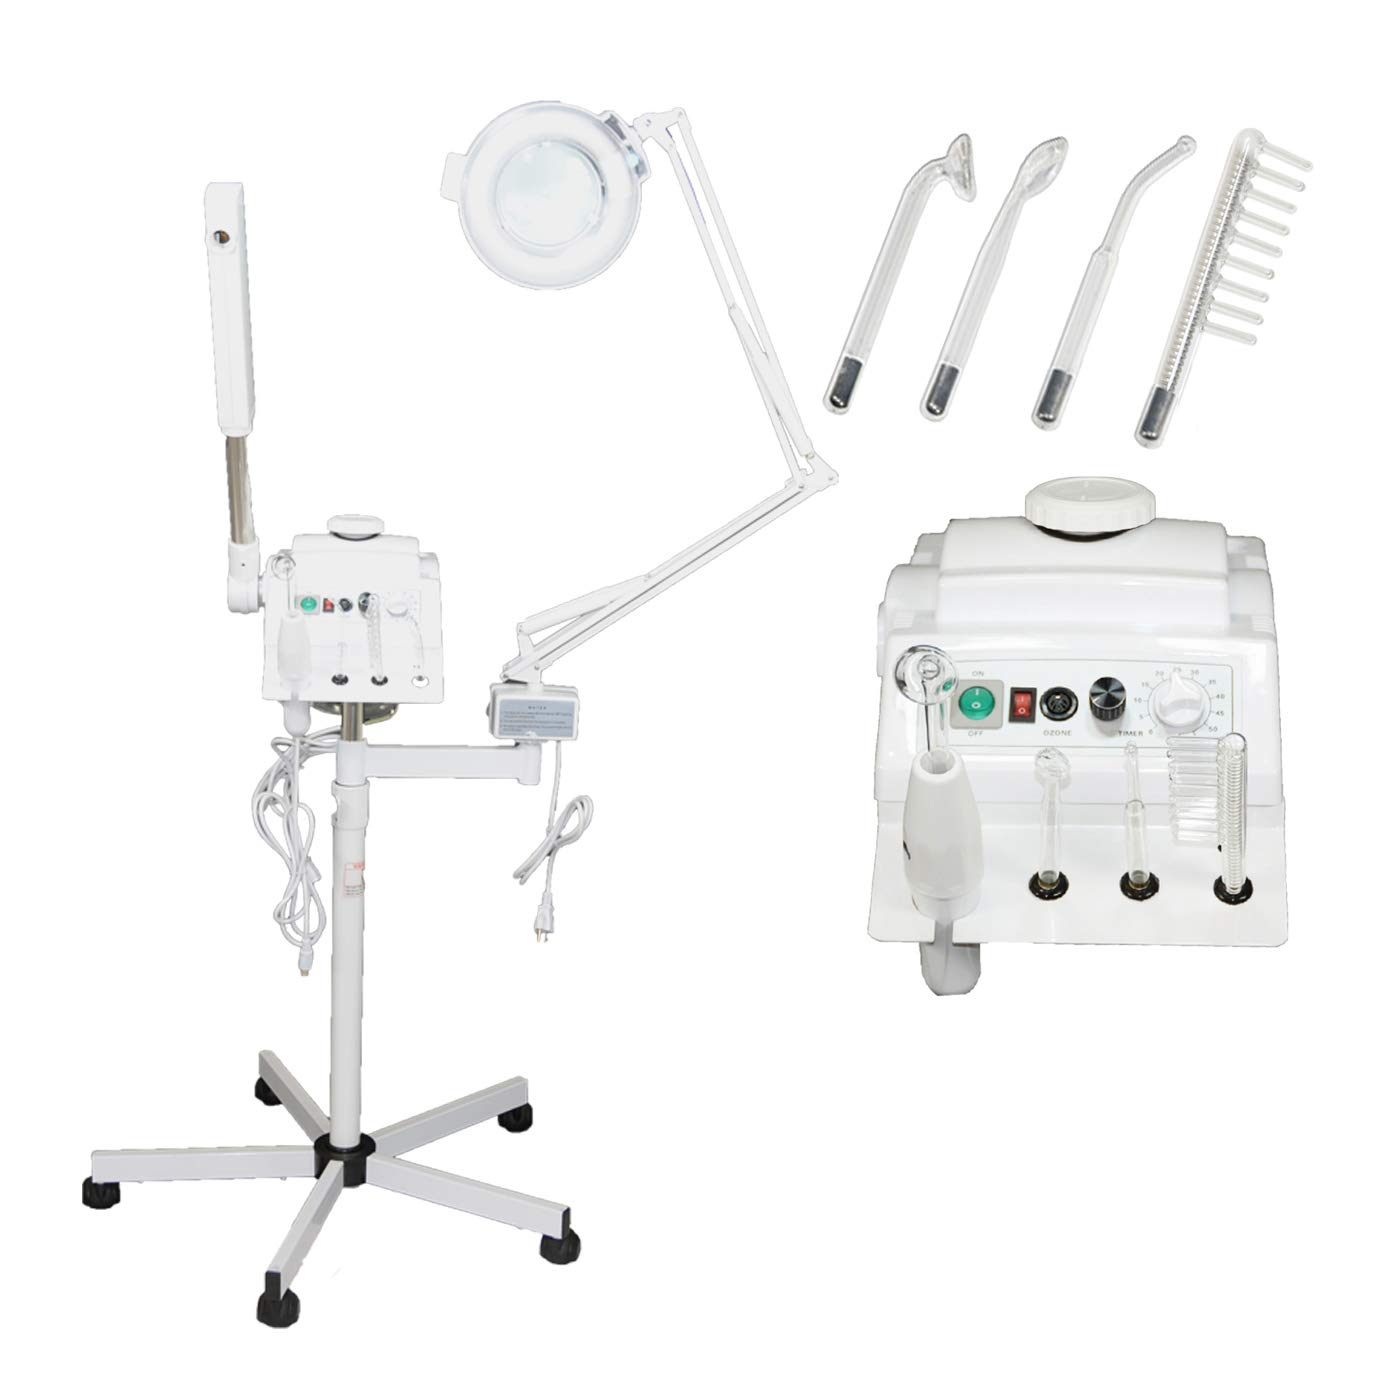 Amazon.com: Kendal 3 In 1 Diamond Microdermabrasion